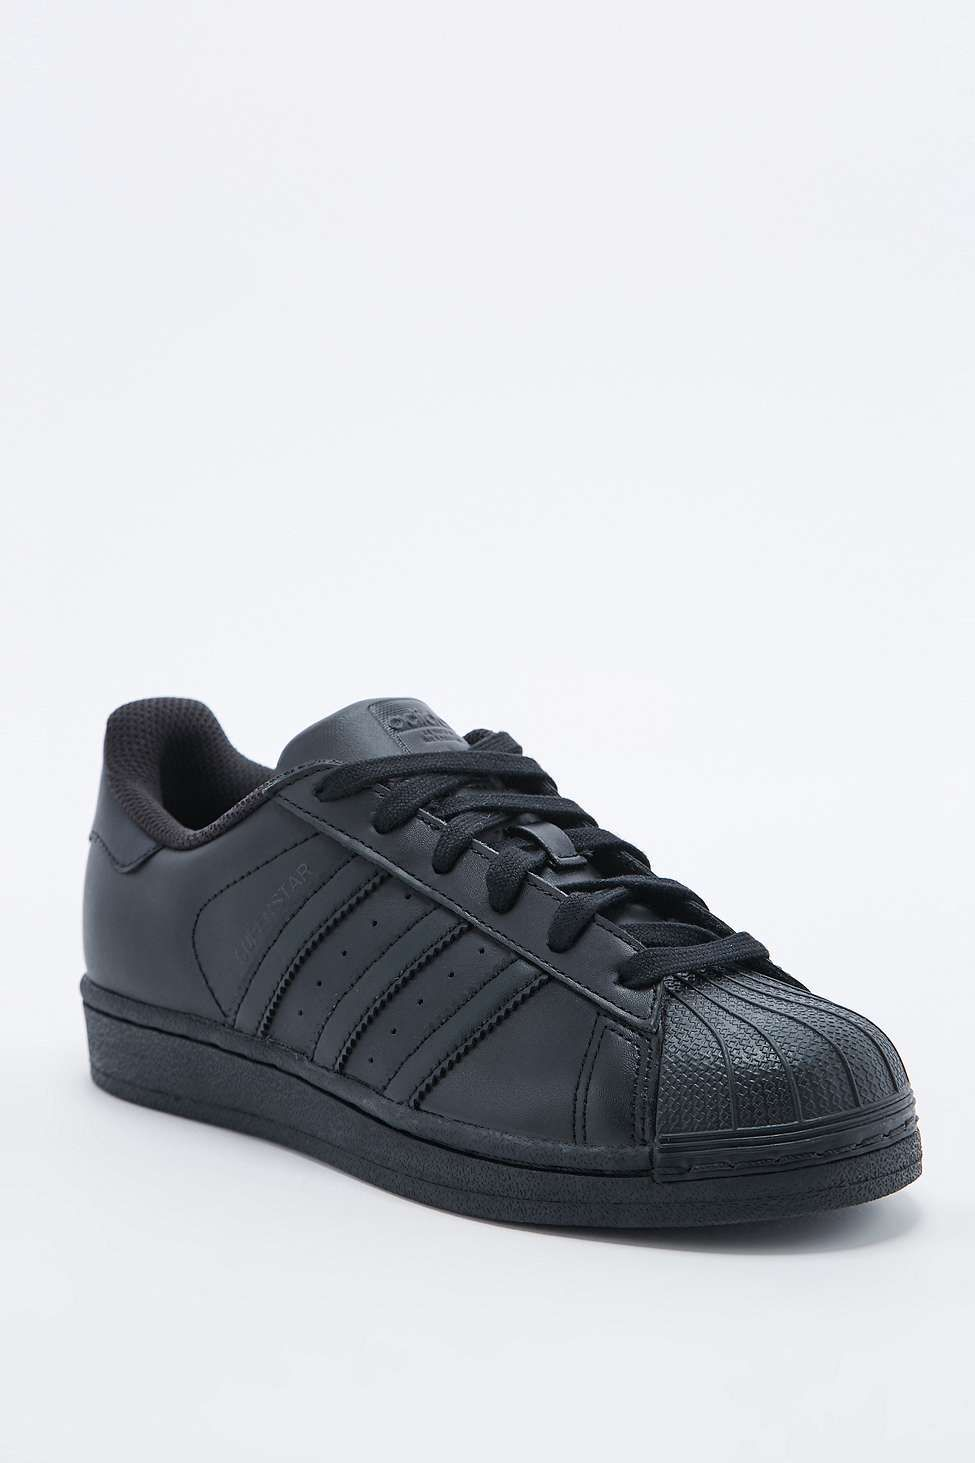 sports shoes 47bb2 d4732 Adidas Superstar All Black Trainer